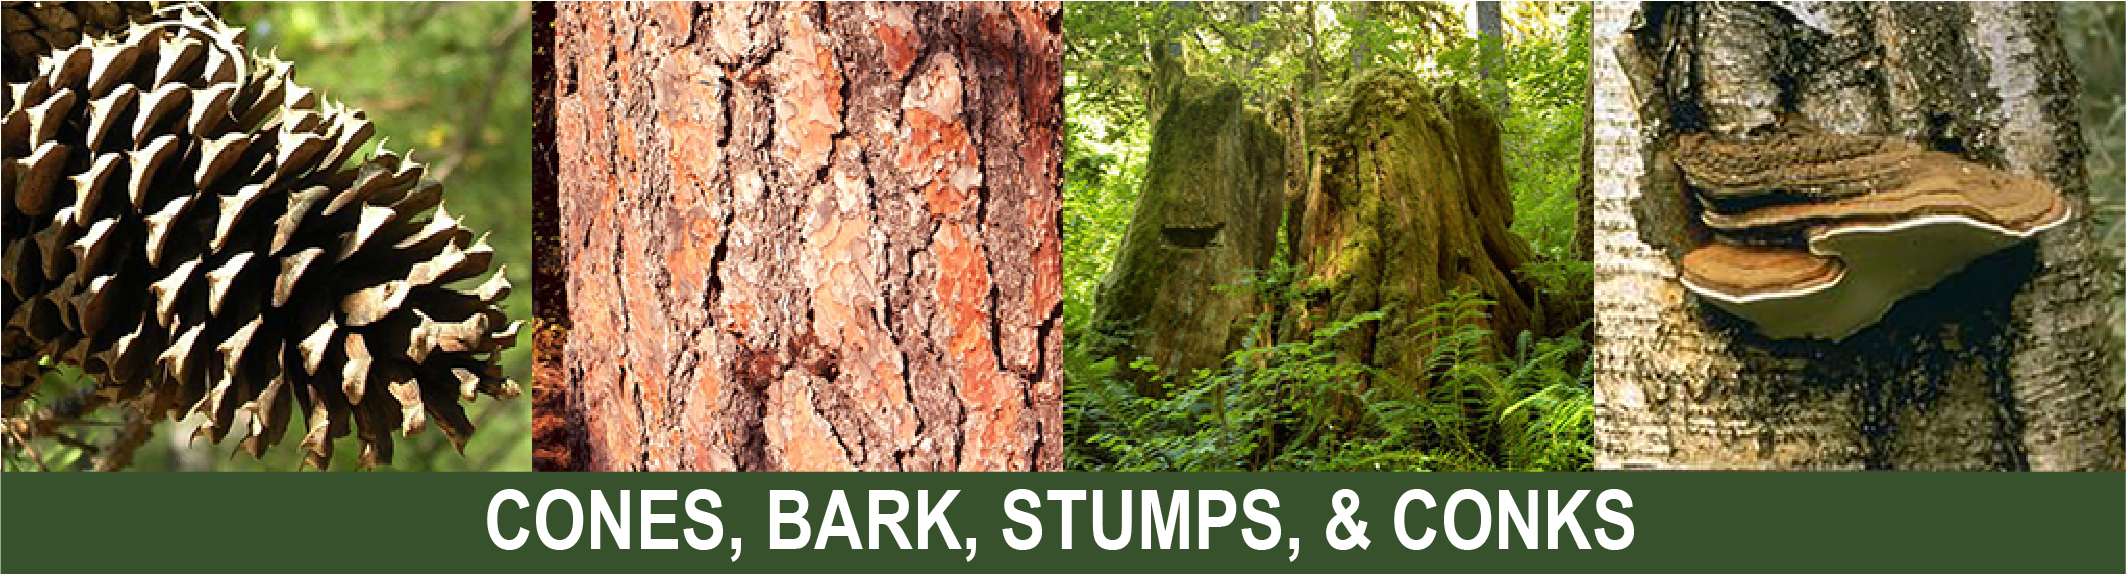 Click for info on cones, bark, stumps, and conk collecting